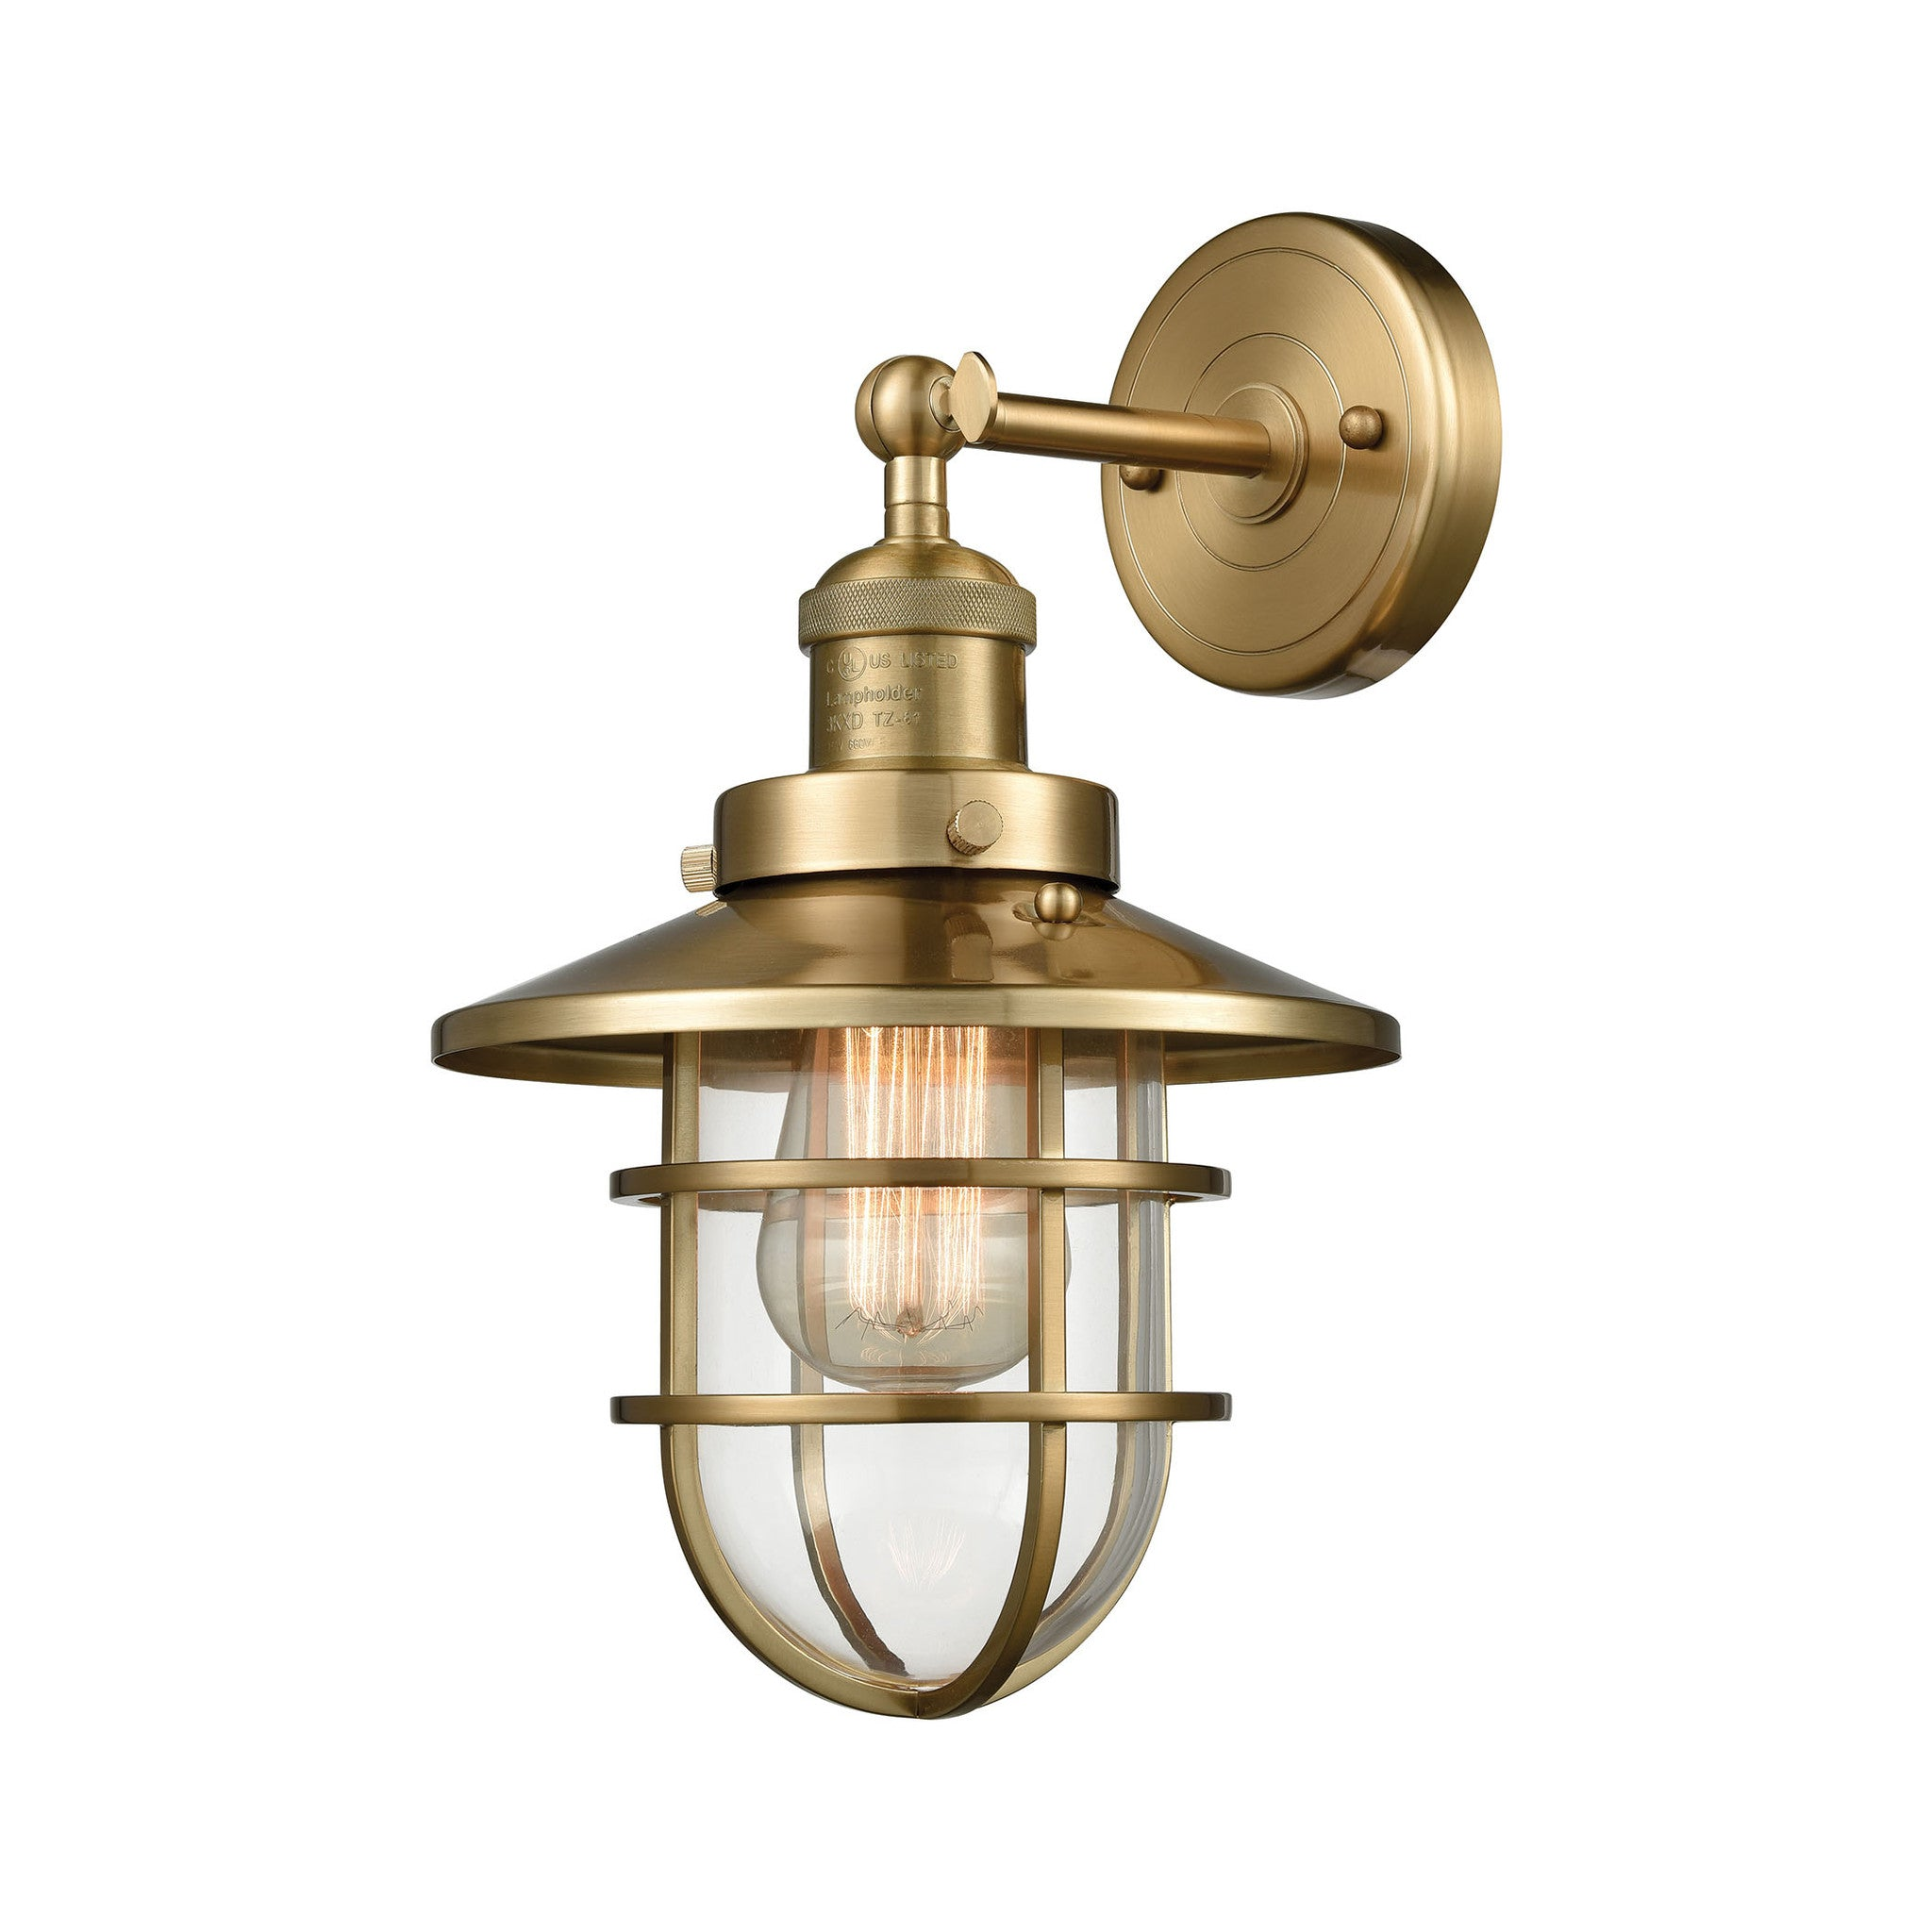 Seaport 1 Light Wall sconce in Satin Brass by Elk Lighting 66386-1